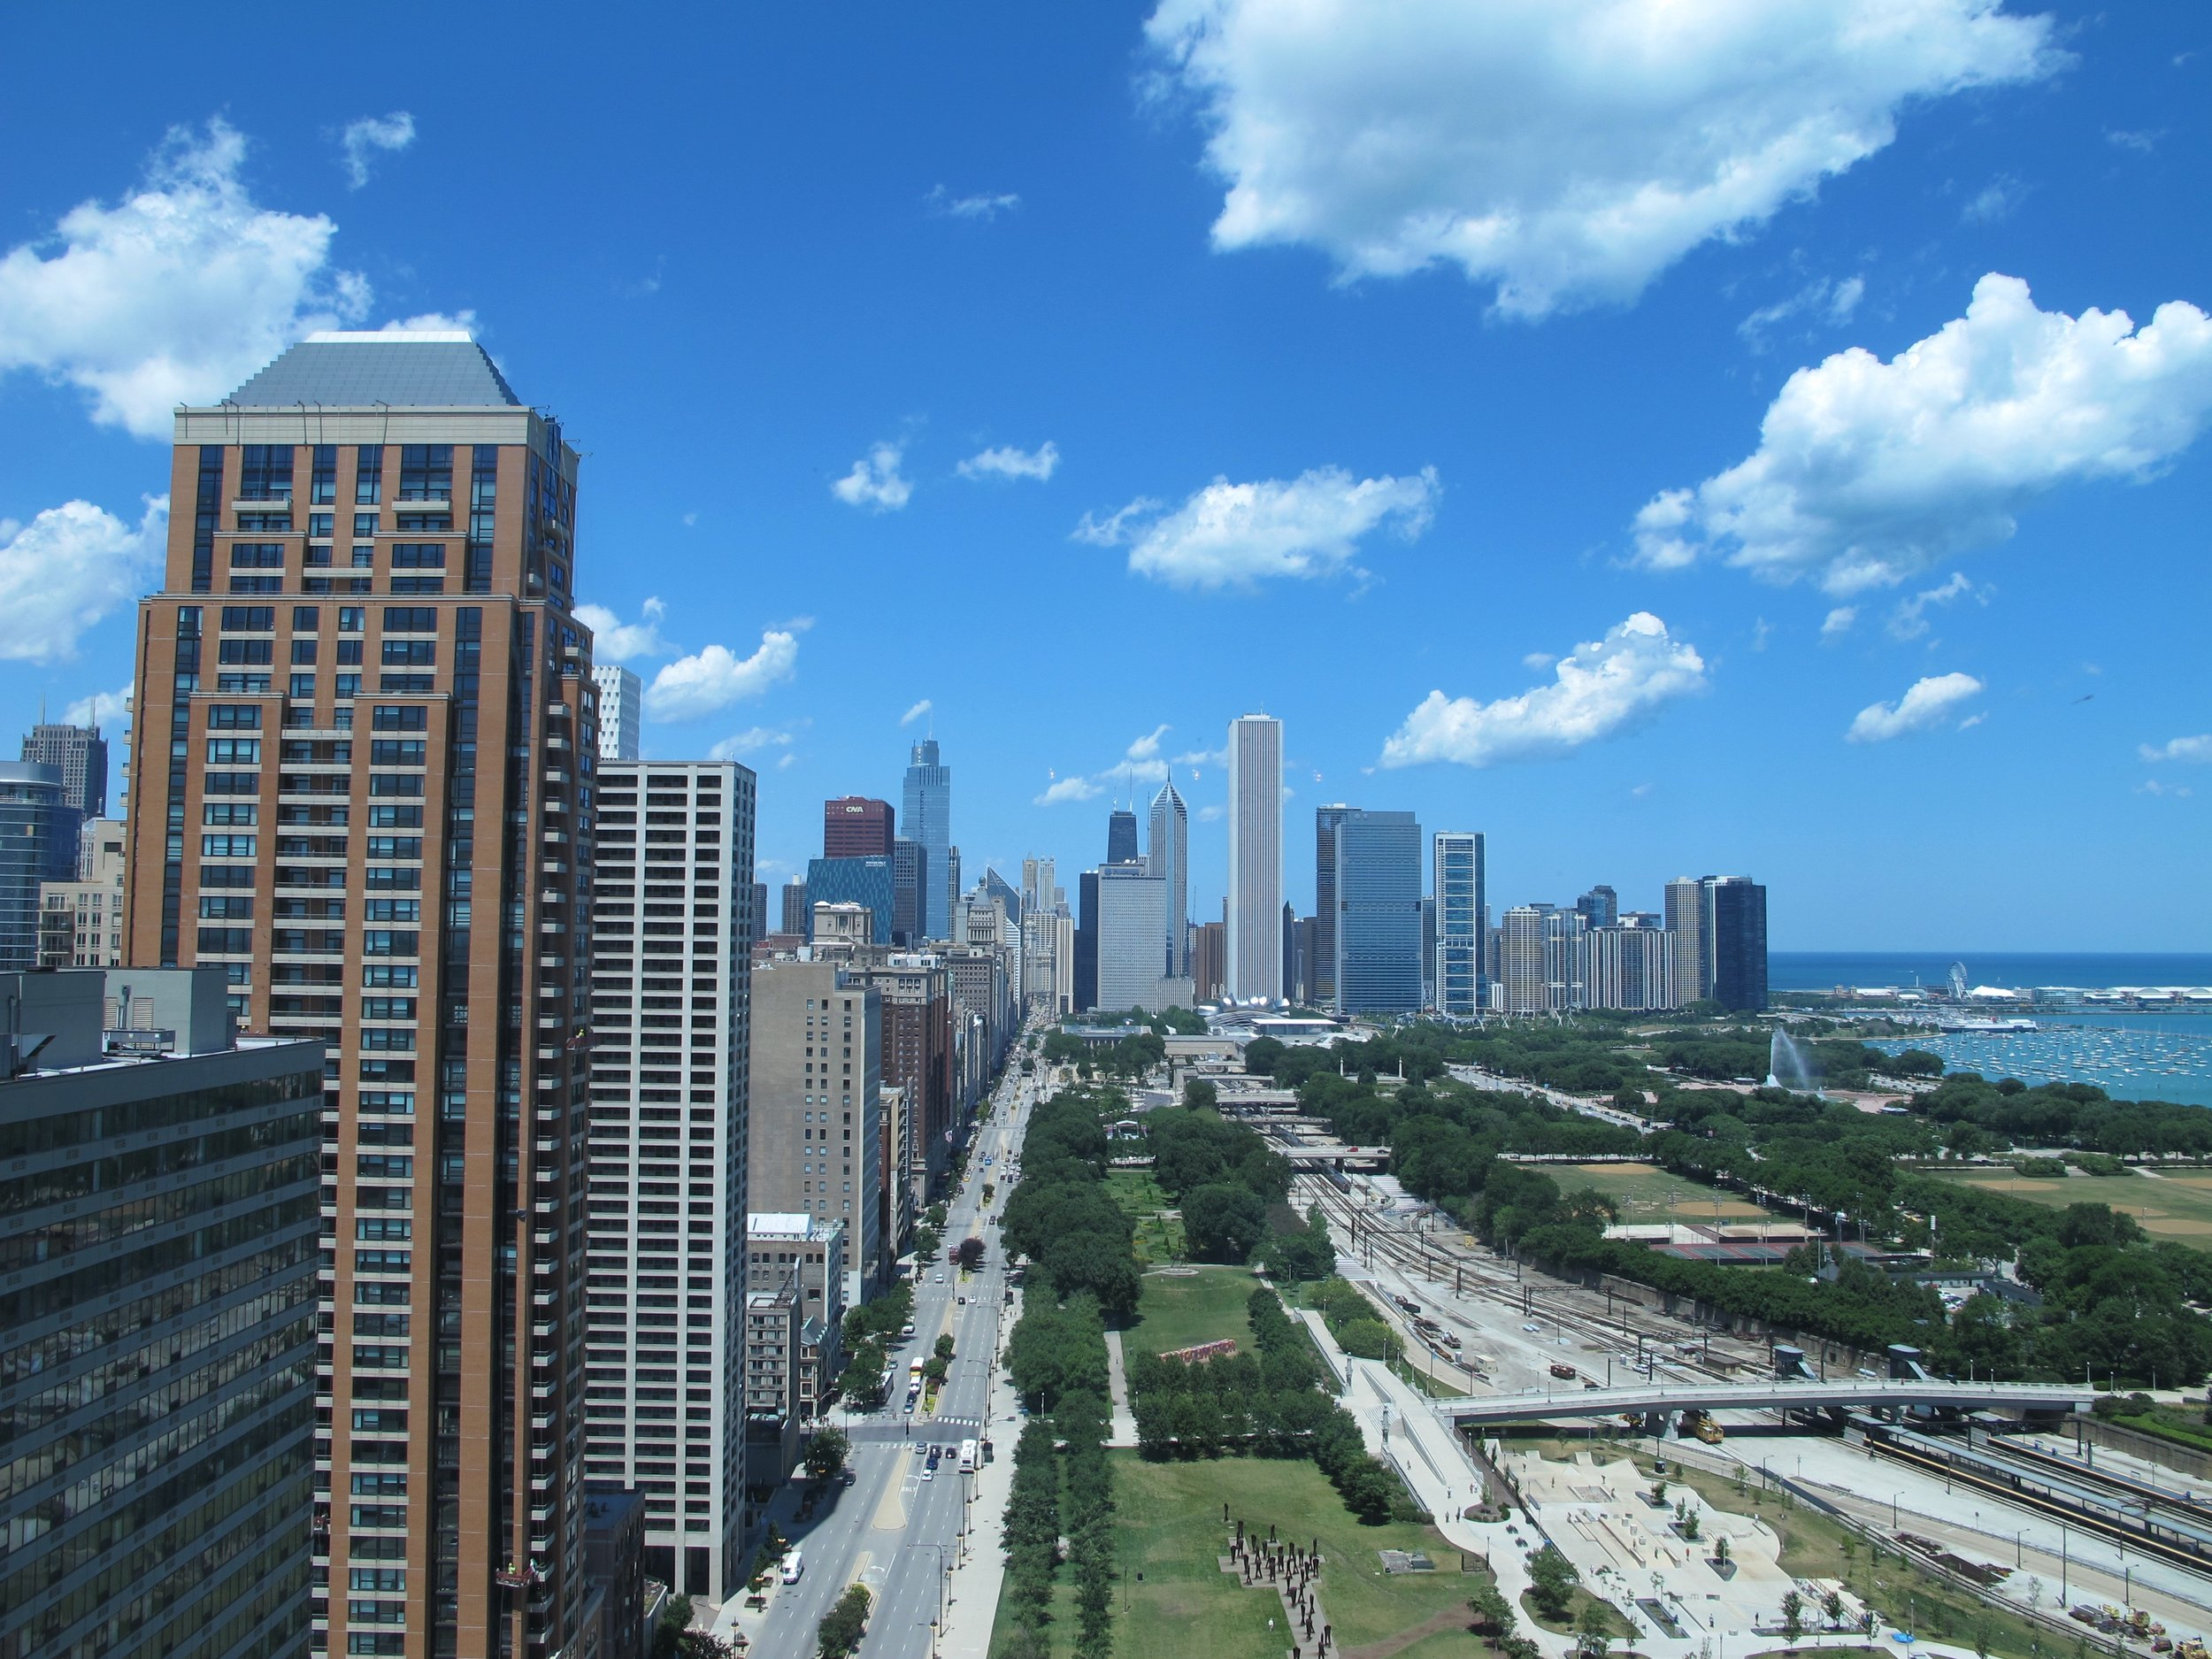 South Loop - South Loop is one the fastest developing neighborhoods in Chicago. With easy access to transportation, less congestion, and new resturants opening, many Chicagoans are flocking to this hot new neighborhood!